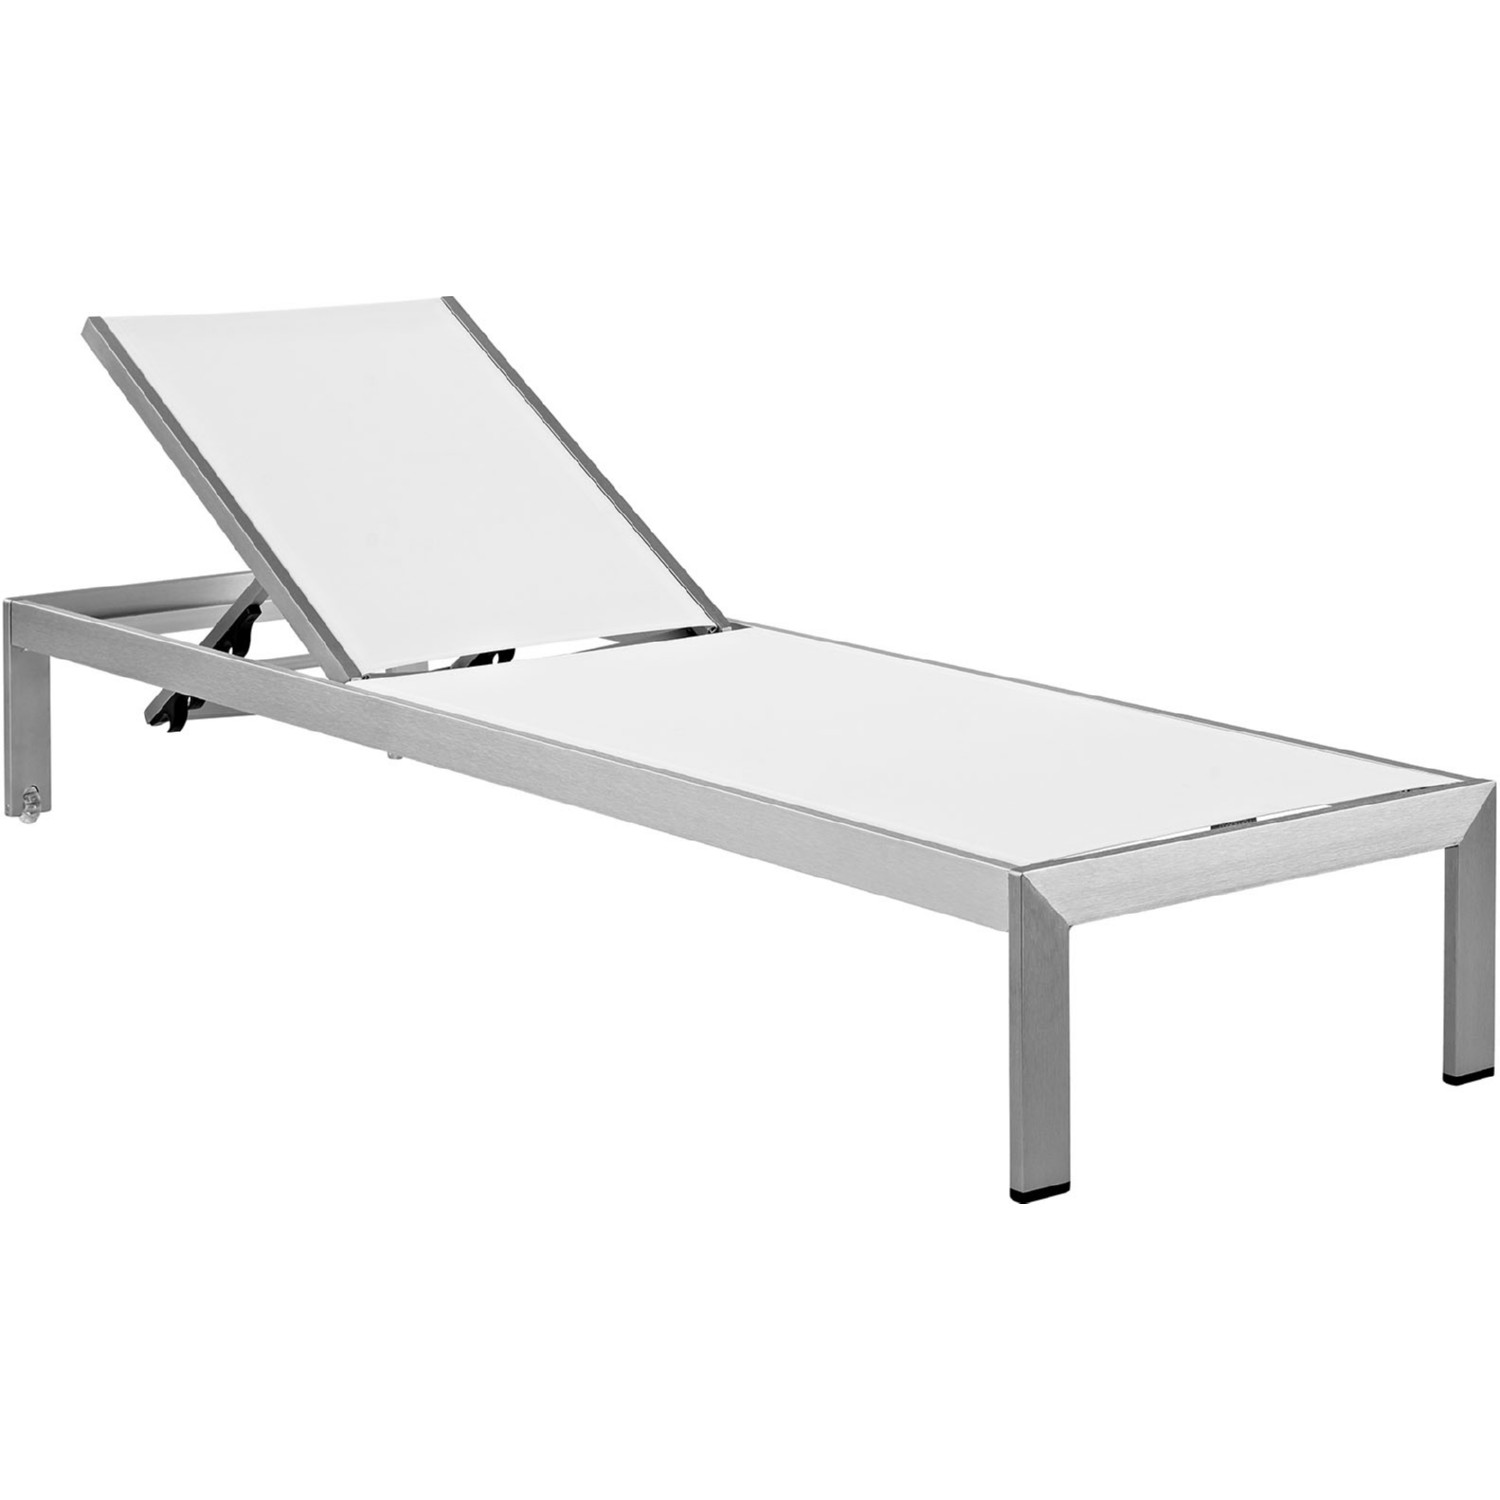 White Plastic Sun Loungers Shore Outdoor Patio Aluminum Chaise In Brushed Silver W White Textilene By Modway